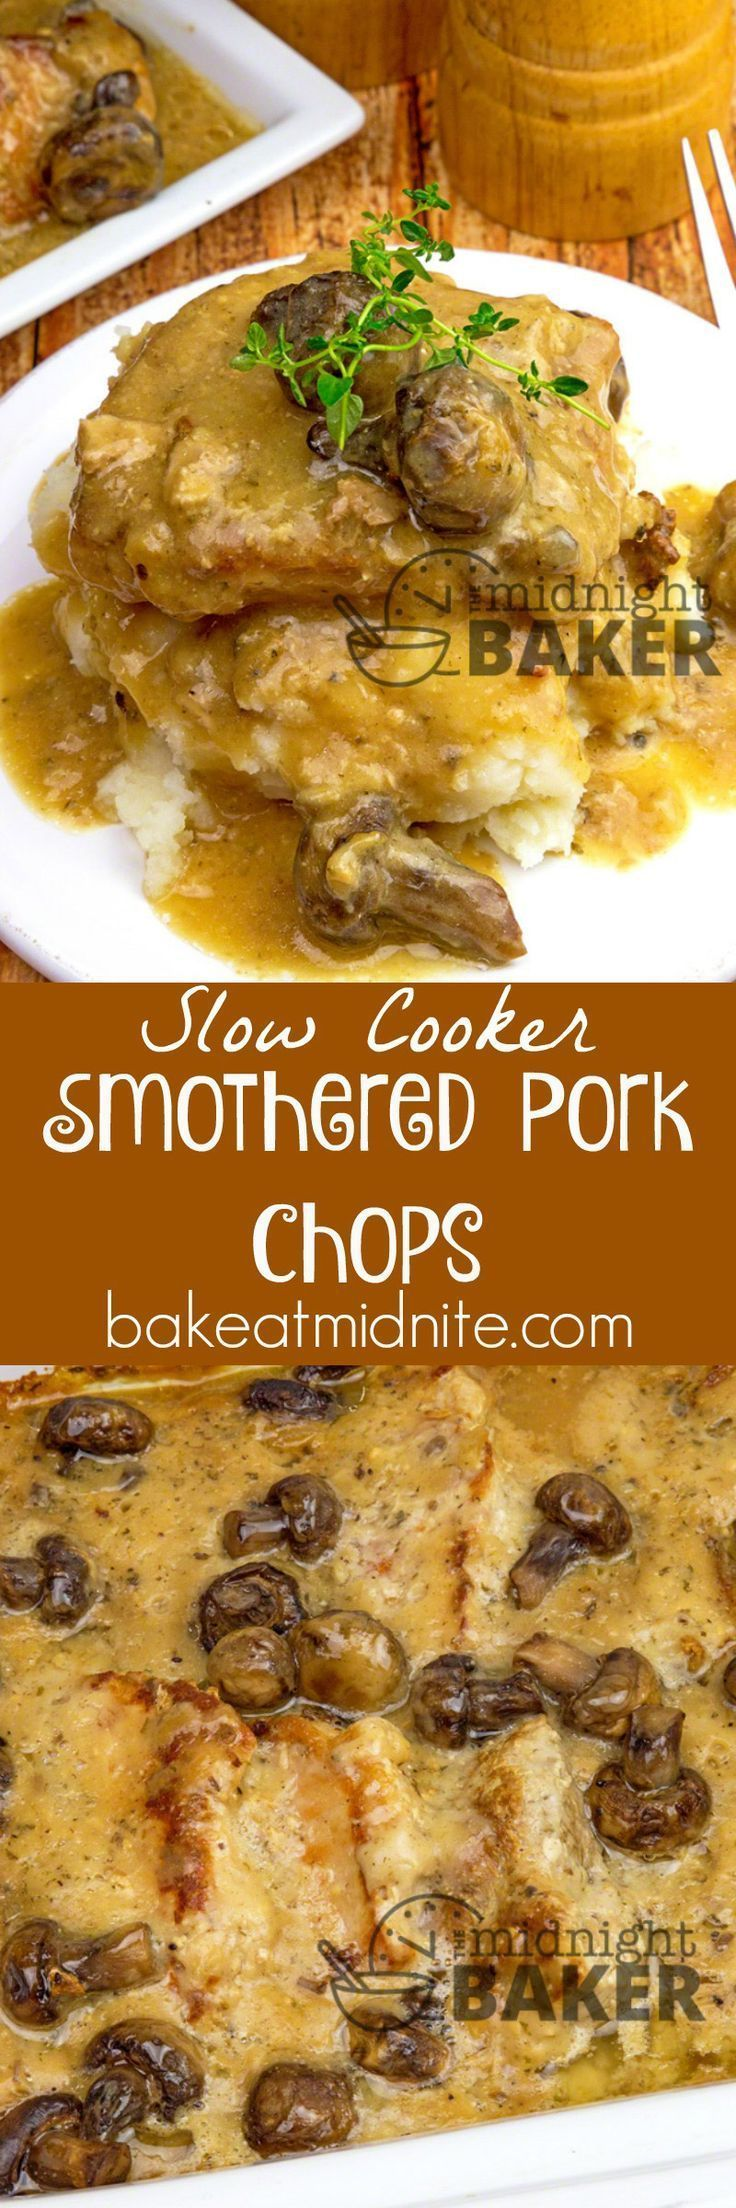 chops smothered in an awesome gravy. Easy to make in the slow cooker.